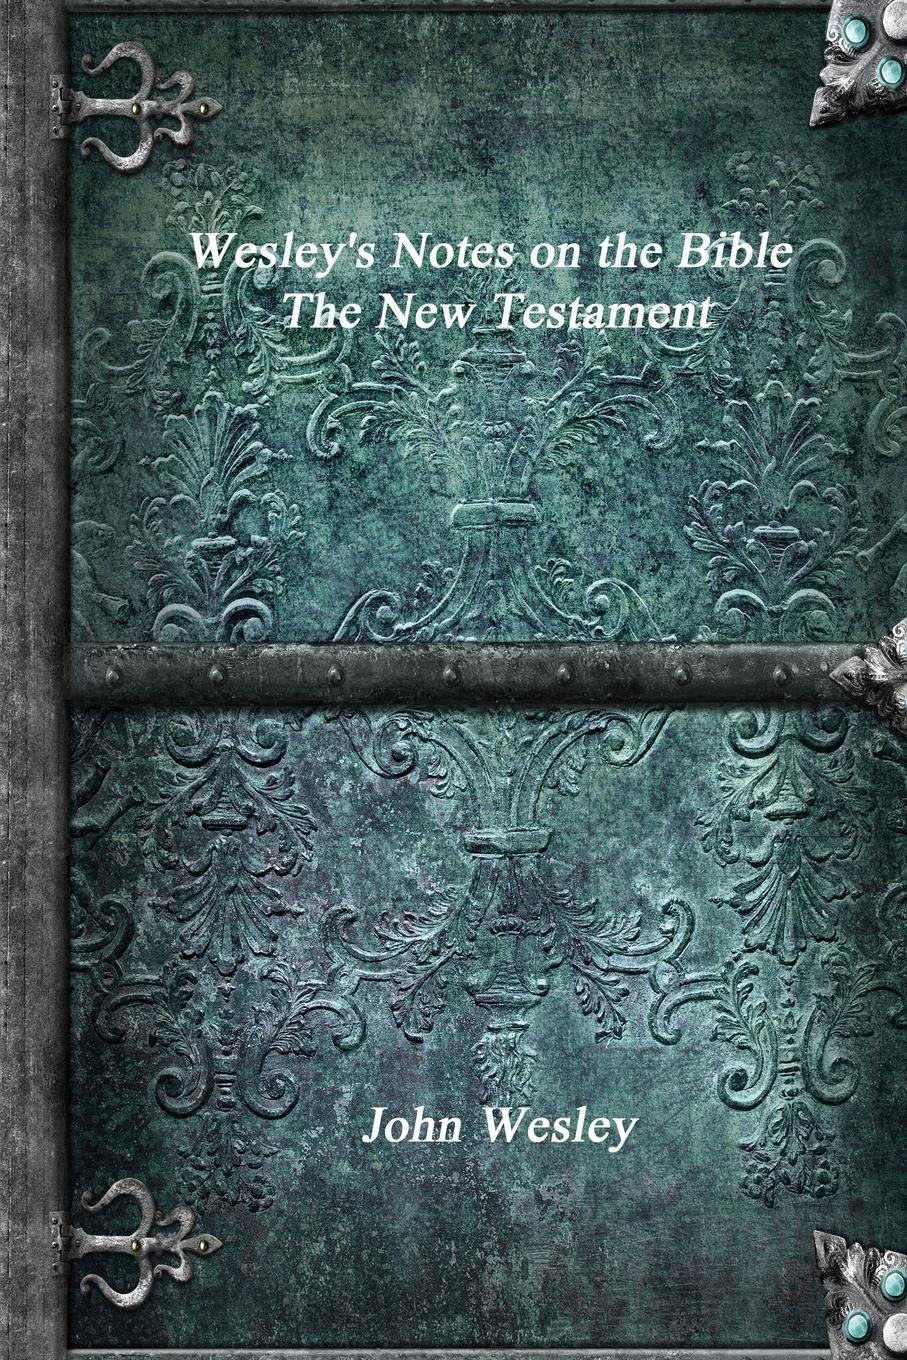 John Wesley W Notes on the Bible - The New Testament